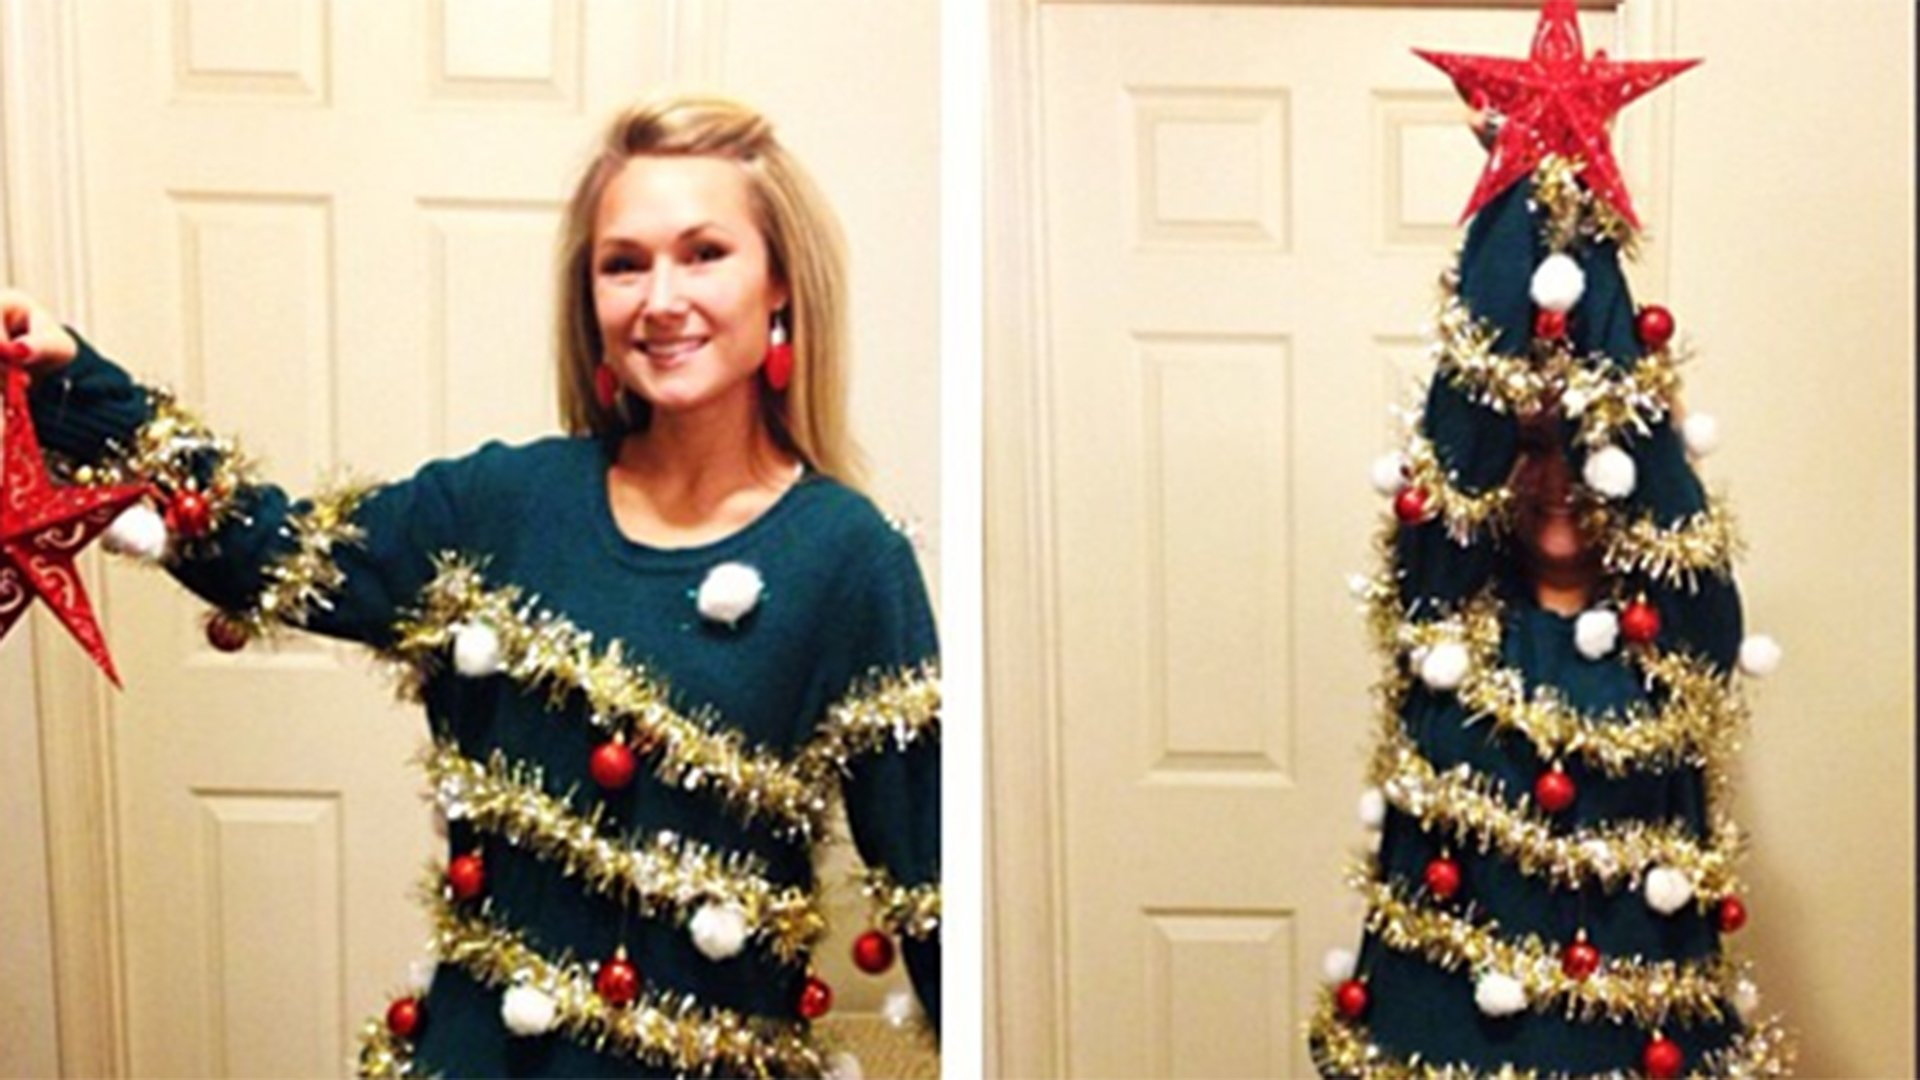 10 Fantastic Do It Yourself Ugly Christmas Sweater Ideas 7 diy ugly christmas sweaters from pinterest 1 2020